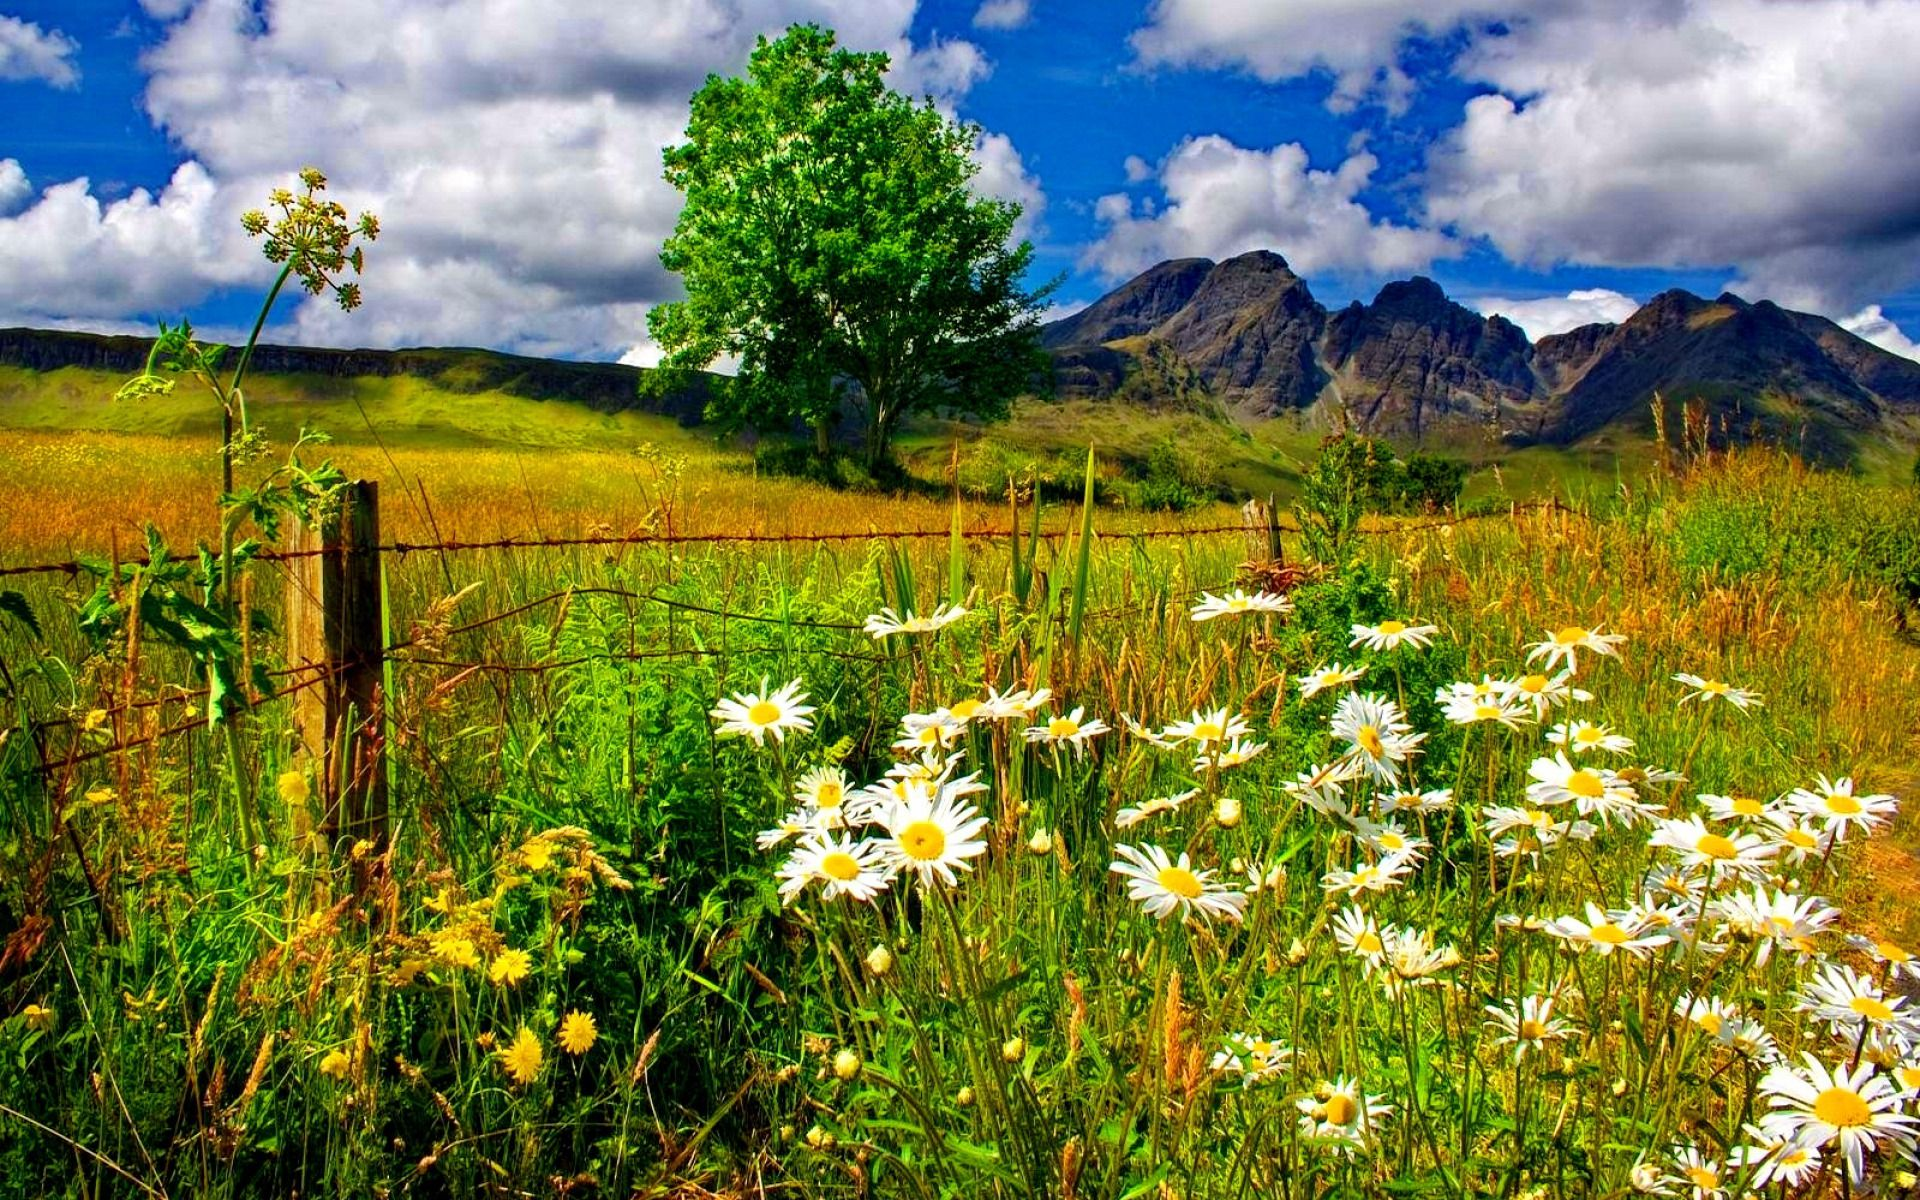 Daisies Growing In Mountain Field Computer Wallpapers Desktop Backgrounds 1920x1200 Id 686371 Spring Landscape Scenic Photos Photography Wallpaper